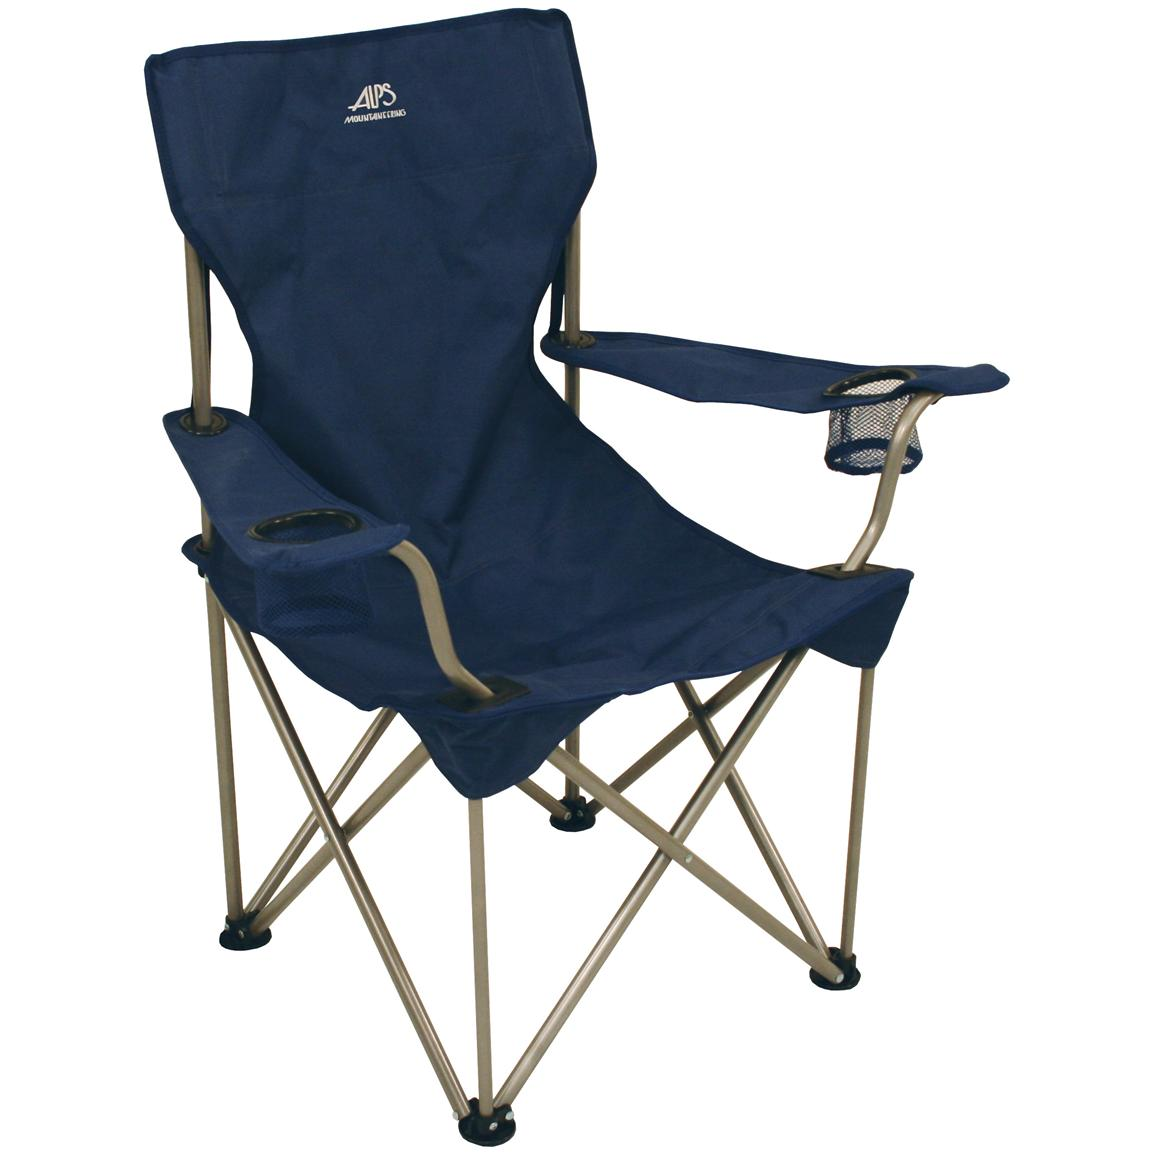 Alps Mountaineering Chair Alps Mountaineering Big C A T Chair 177040 Chairs At